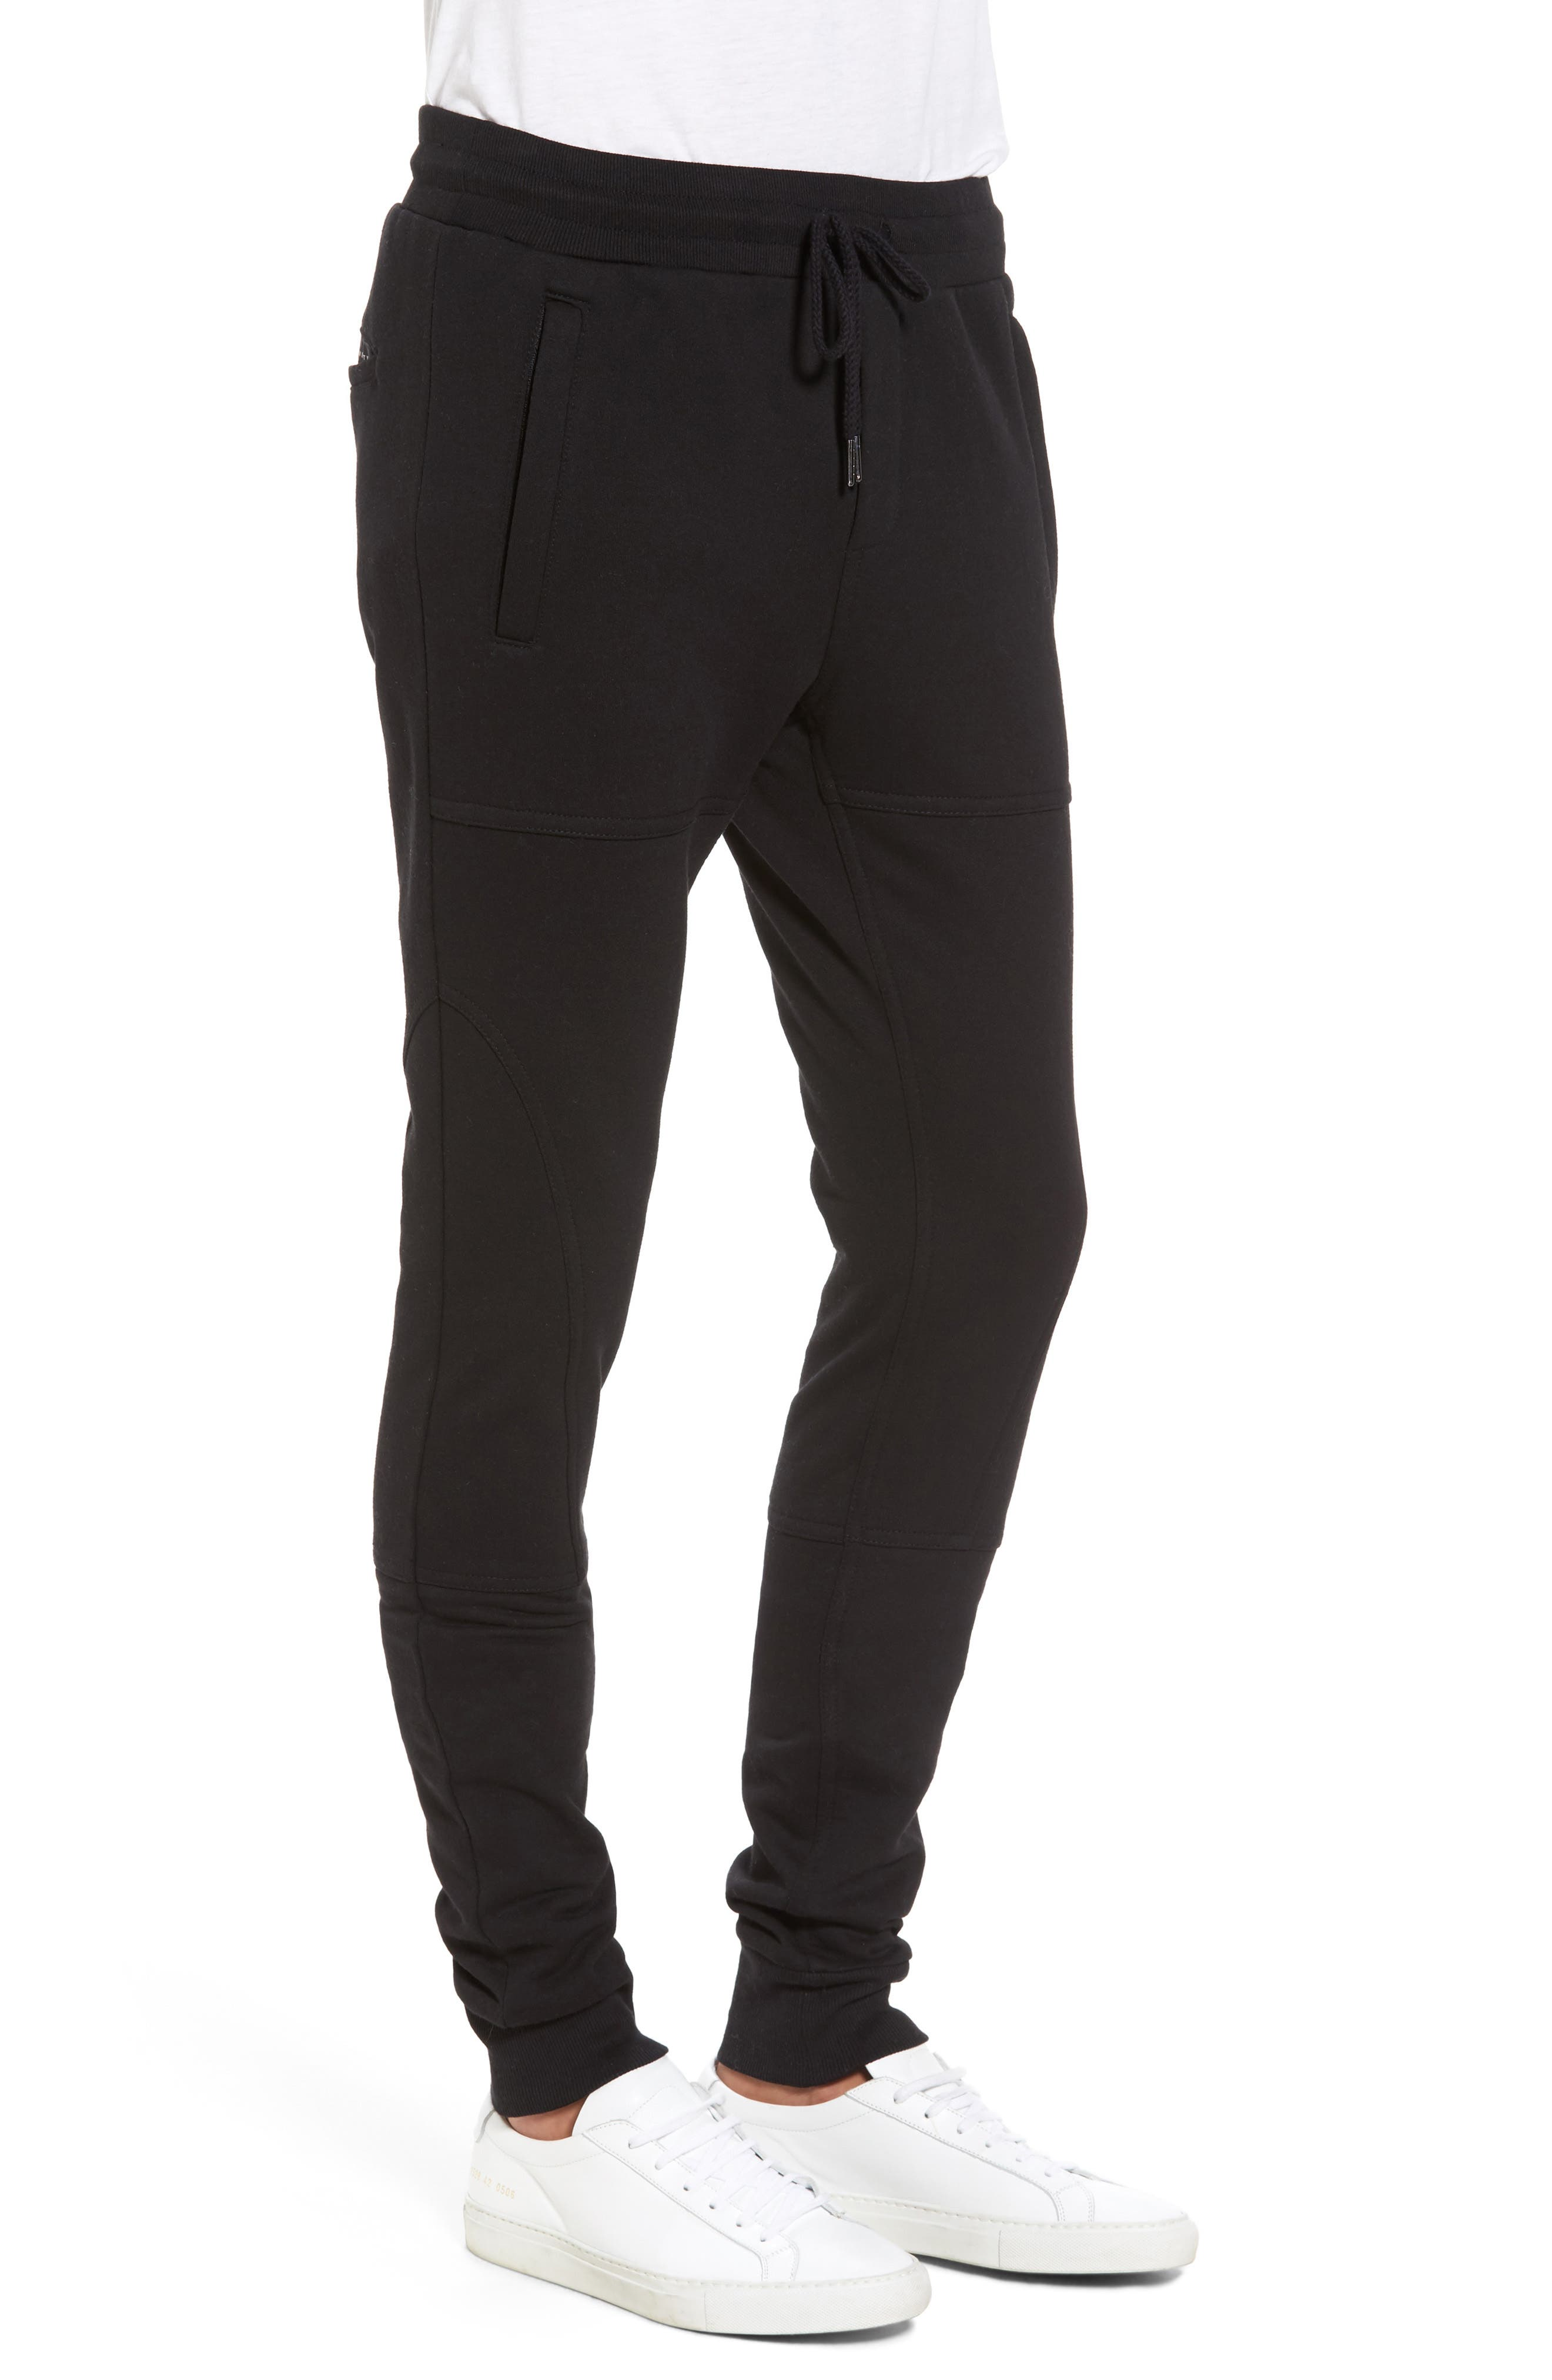 French Terry Sweatpants,                             Alternate thumbnail 3, color,                             001